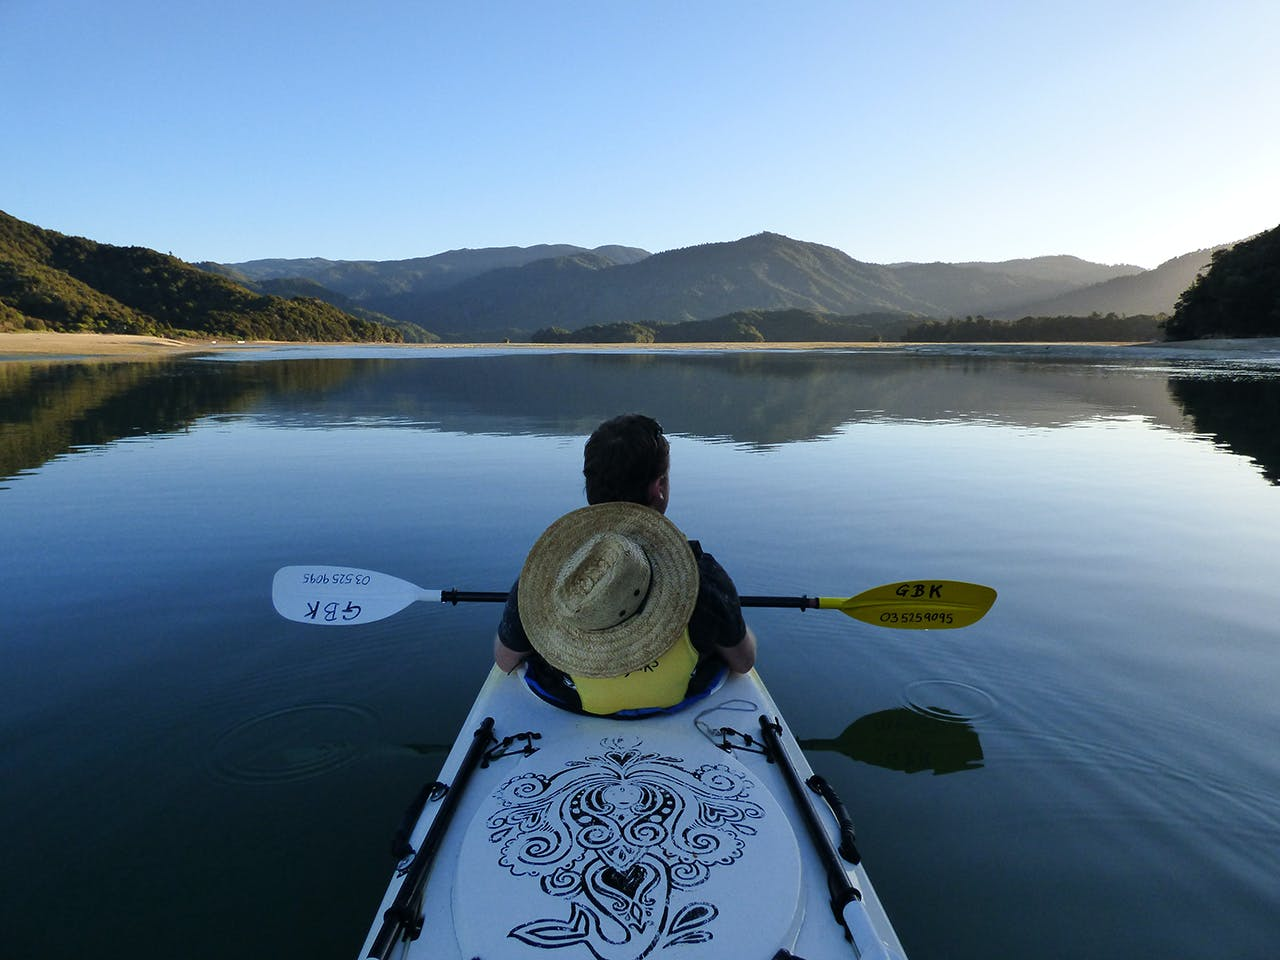 Enjoying the still waters of Awaroa Inlet. Photo: Matthew Pike